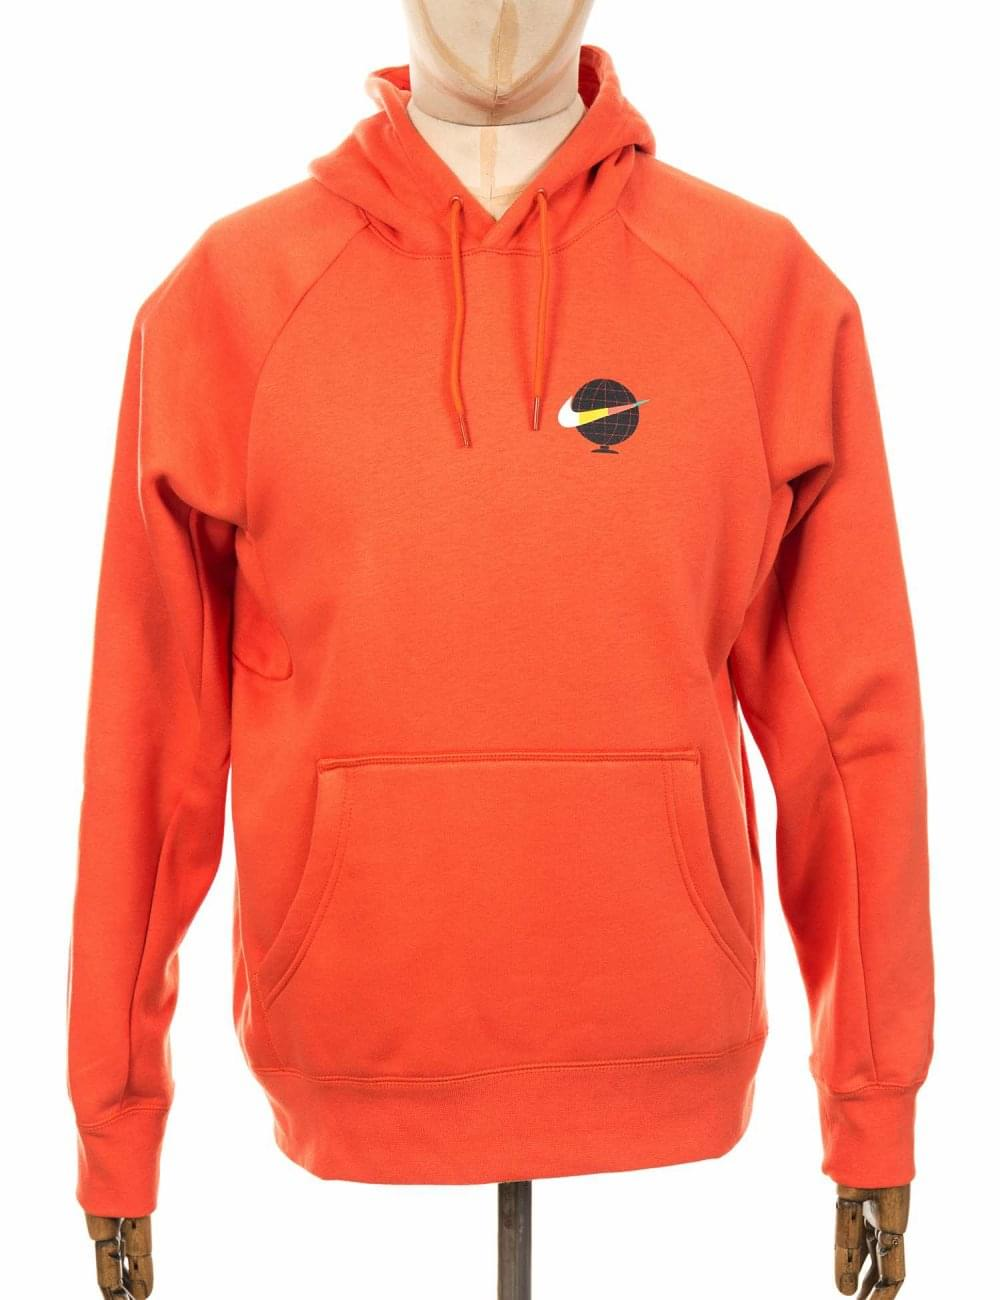 8a79ba12 Nike SB Icon GFX Hooded Sweatshirt - Vintage Coral - Clothing from ...